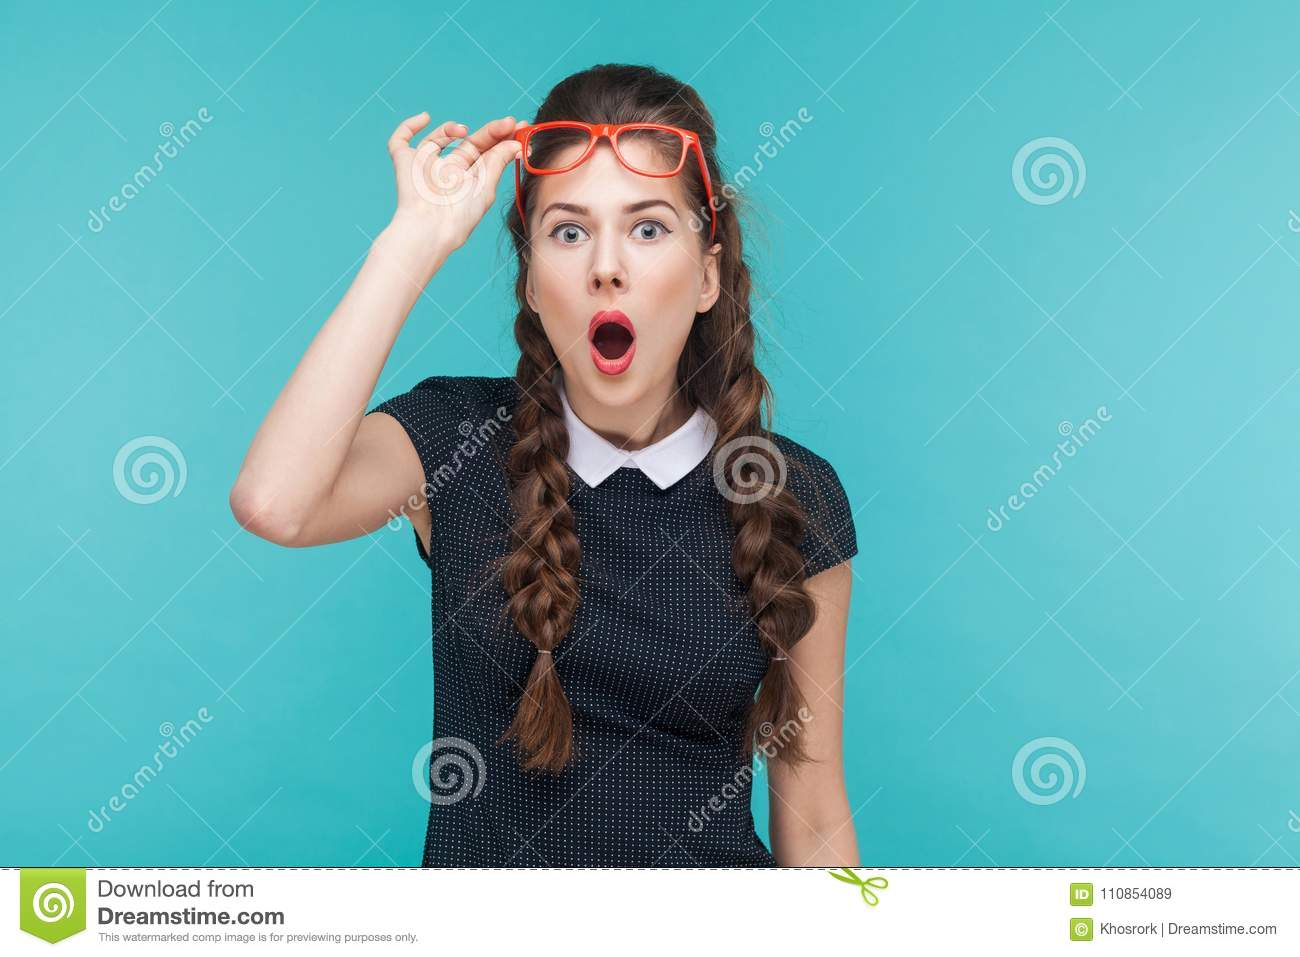 Download Surprised Woman In Red Glasses Amazement Looking At Camera Stock Image - Image of business, face: 110854089